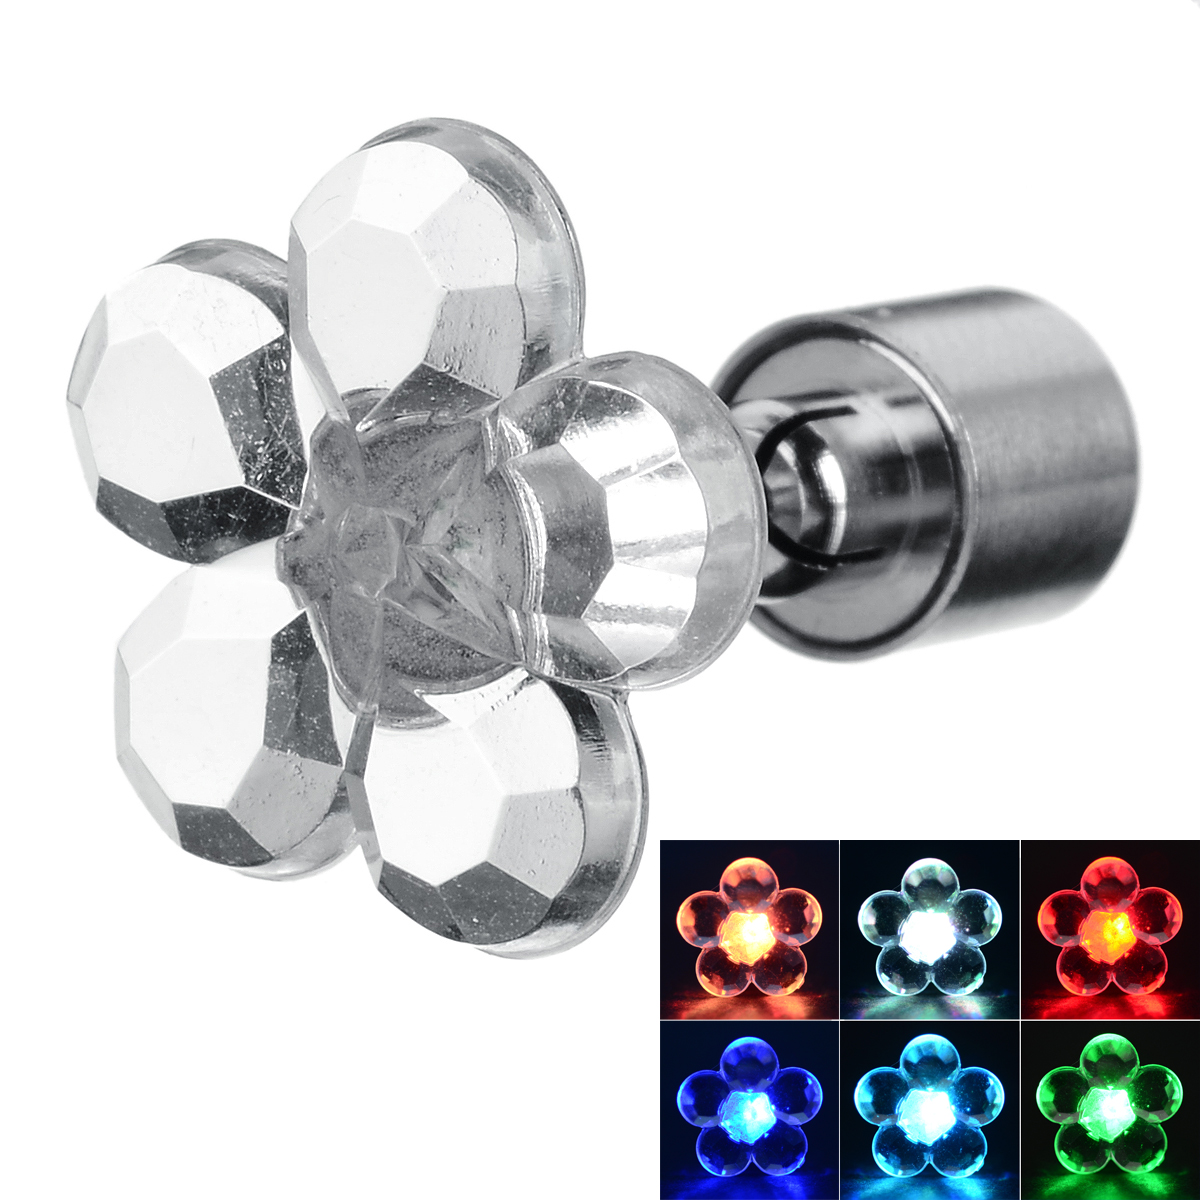 CTSmart Fashion Plum Blossom Style Colorful Light LED Luminous Ear Stud Earring for Party / Bar